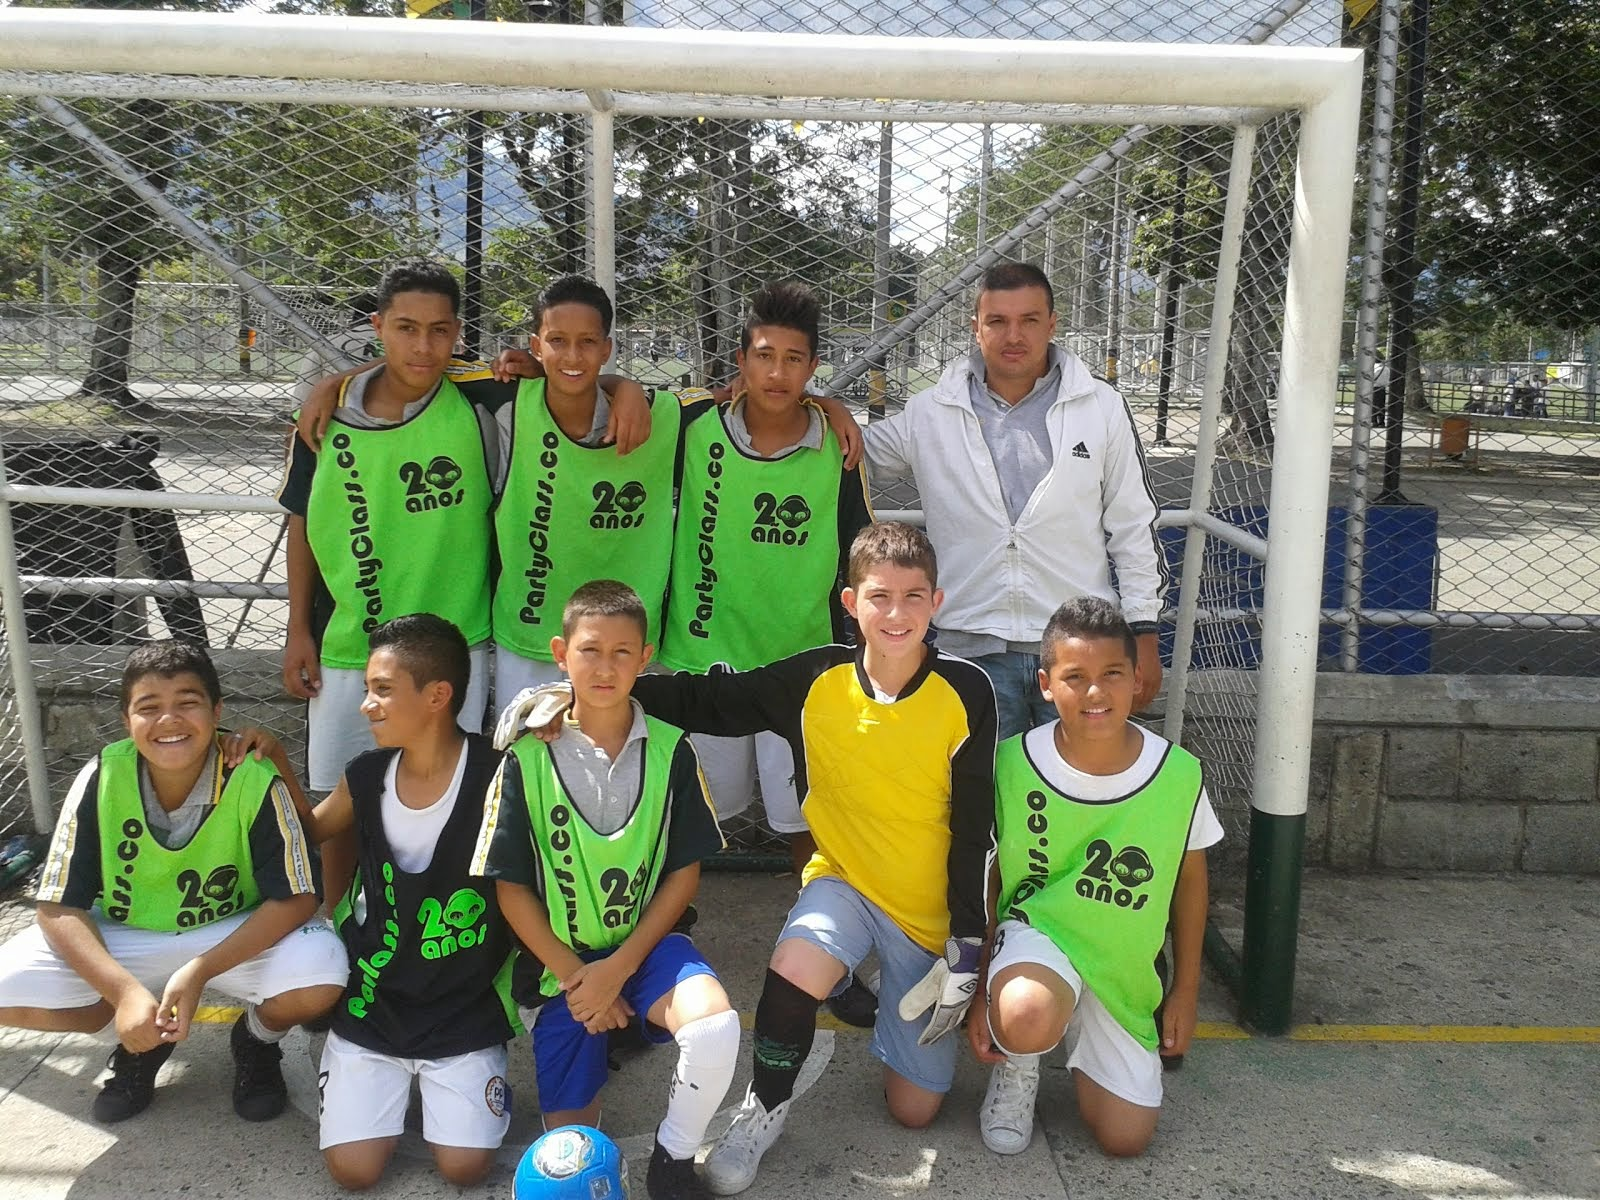 EQUIPO DE FUTBOL DE SALON  CATEGORIA  A